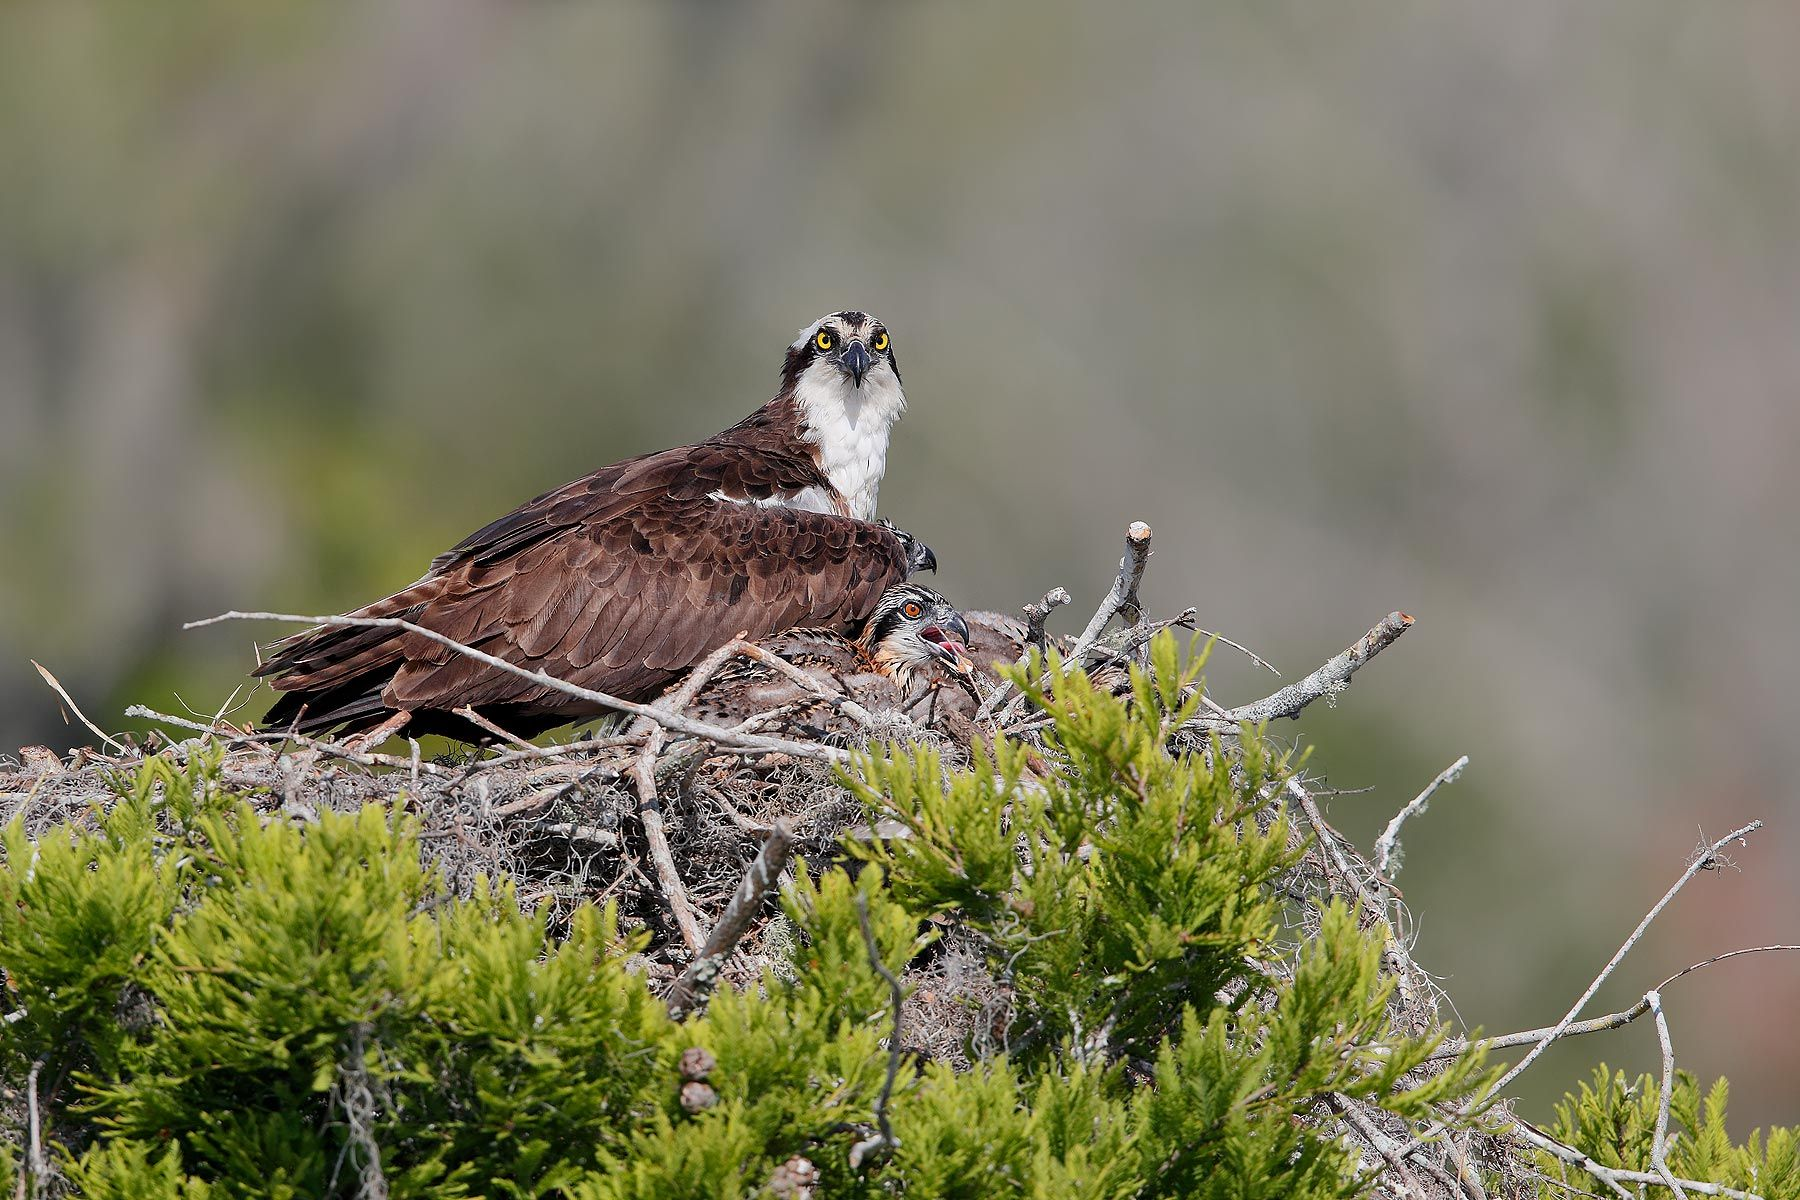 Osprey-and-young-chick-on-nest_A3I0961-Lake-Blue-Cypress,-FL,-USA.jpg